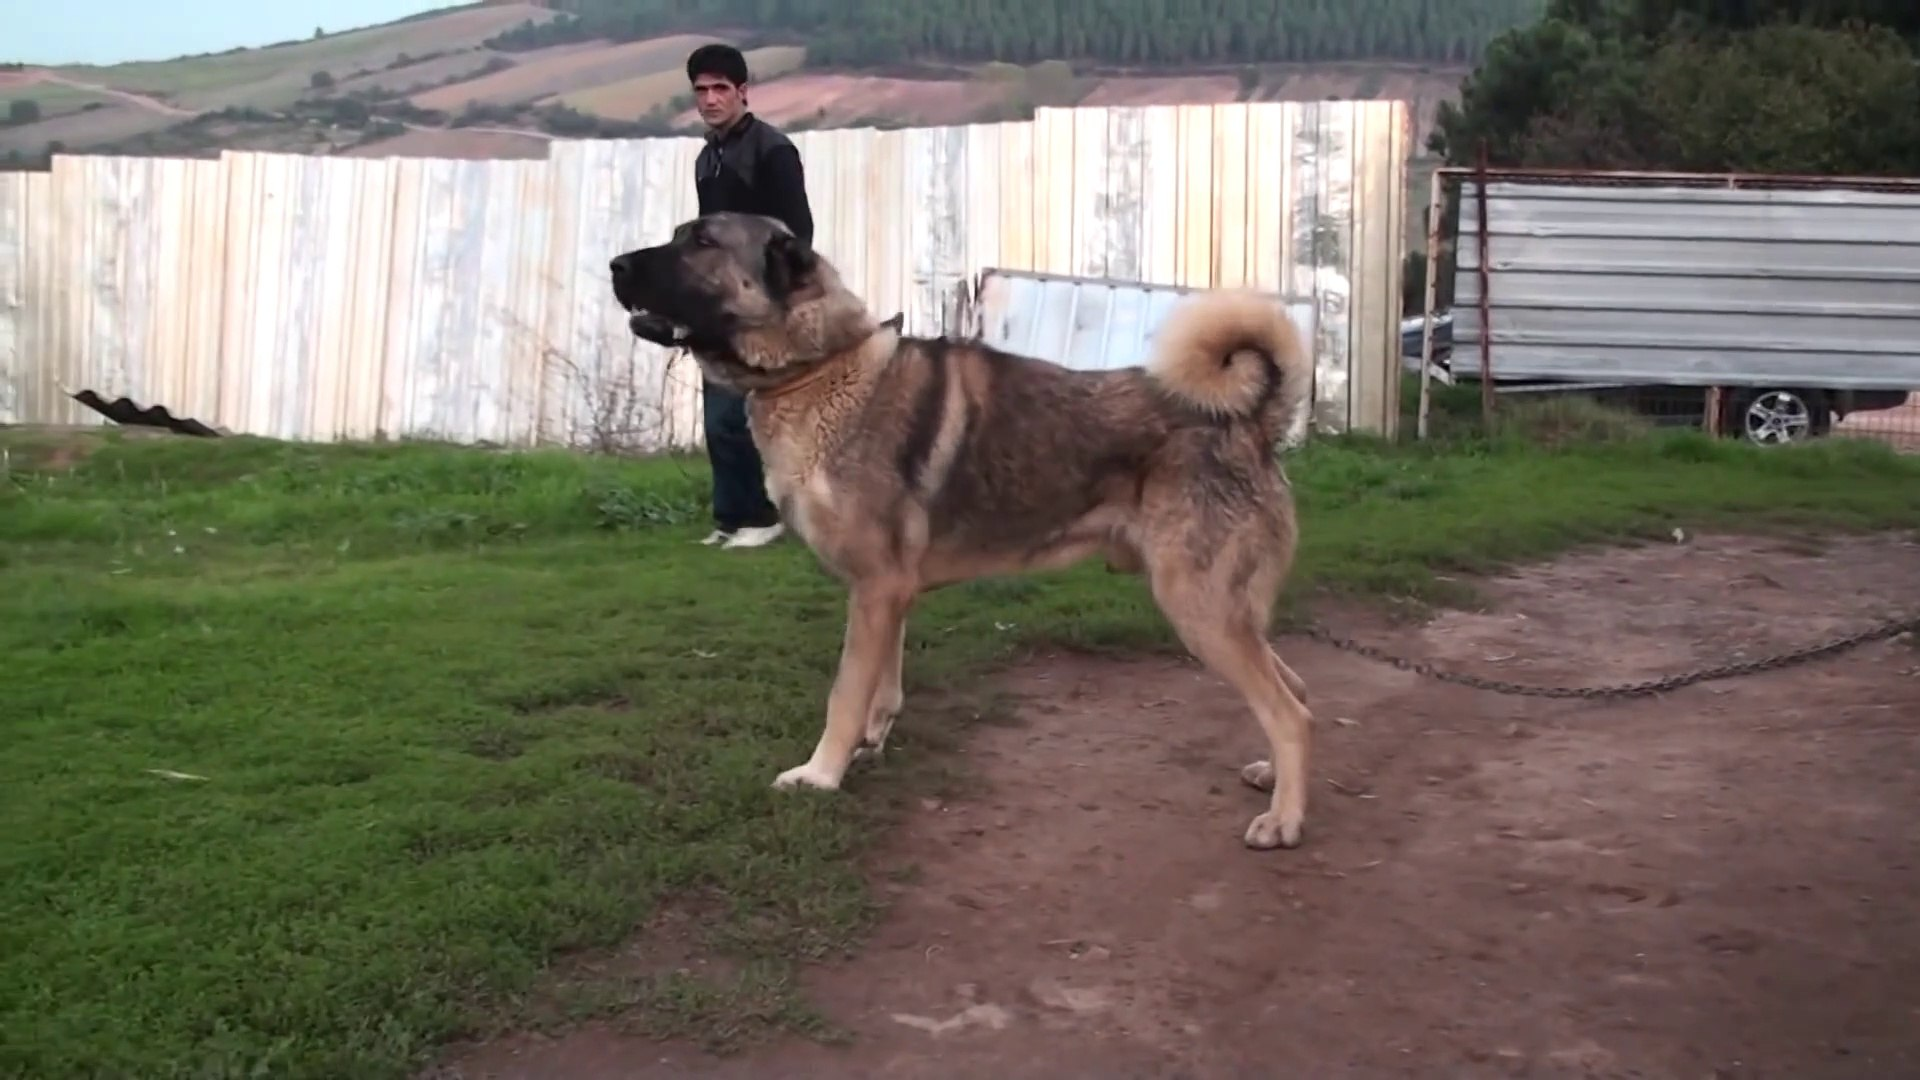 TAM SiMiT KUYRUK ANADOLU COBAN KOPEGi - GiANT and ANGRY ANATOLiAN SHEPHERD DOG